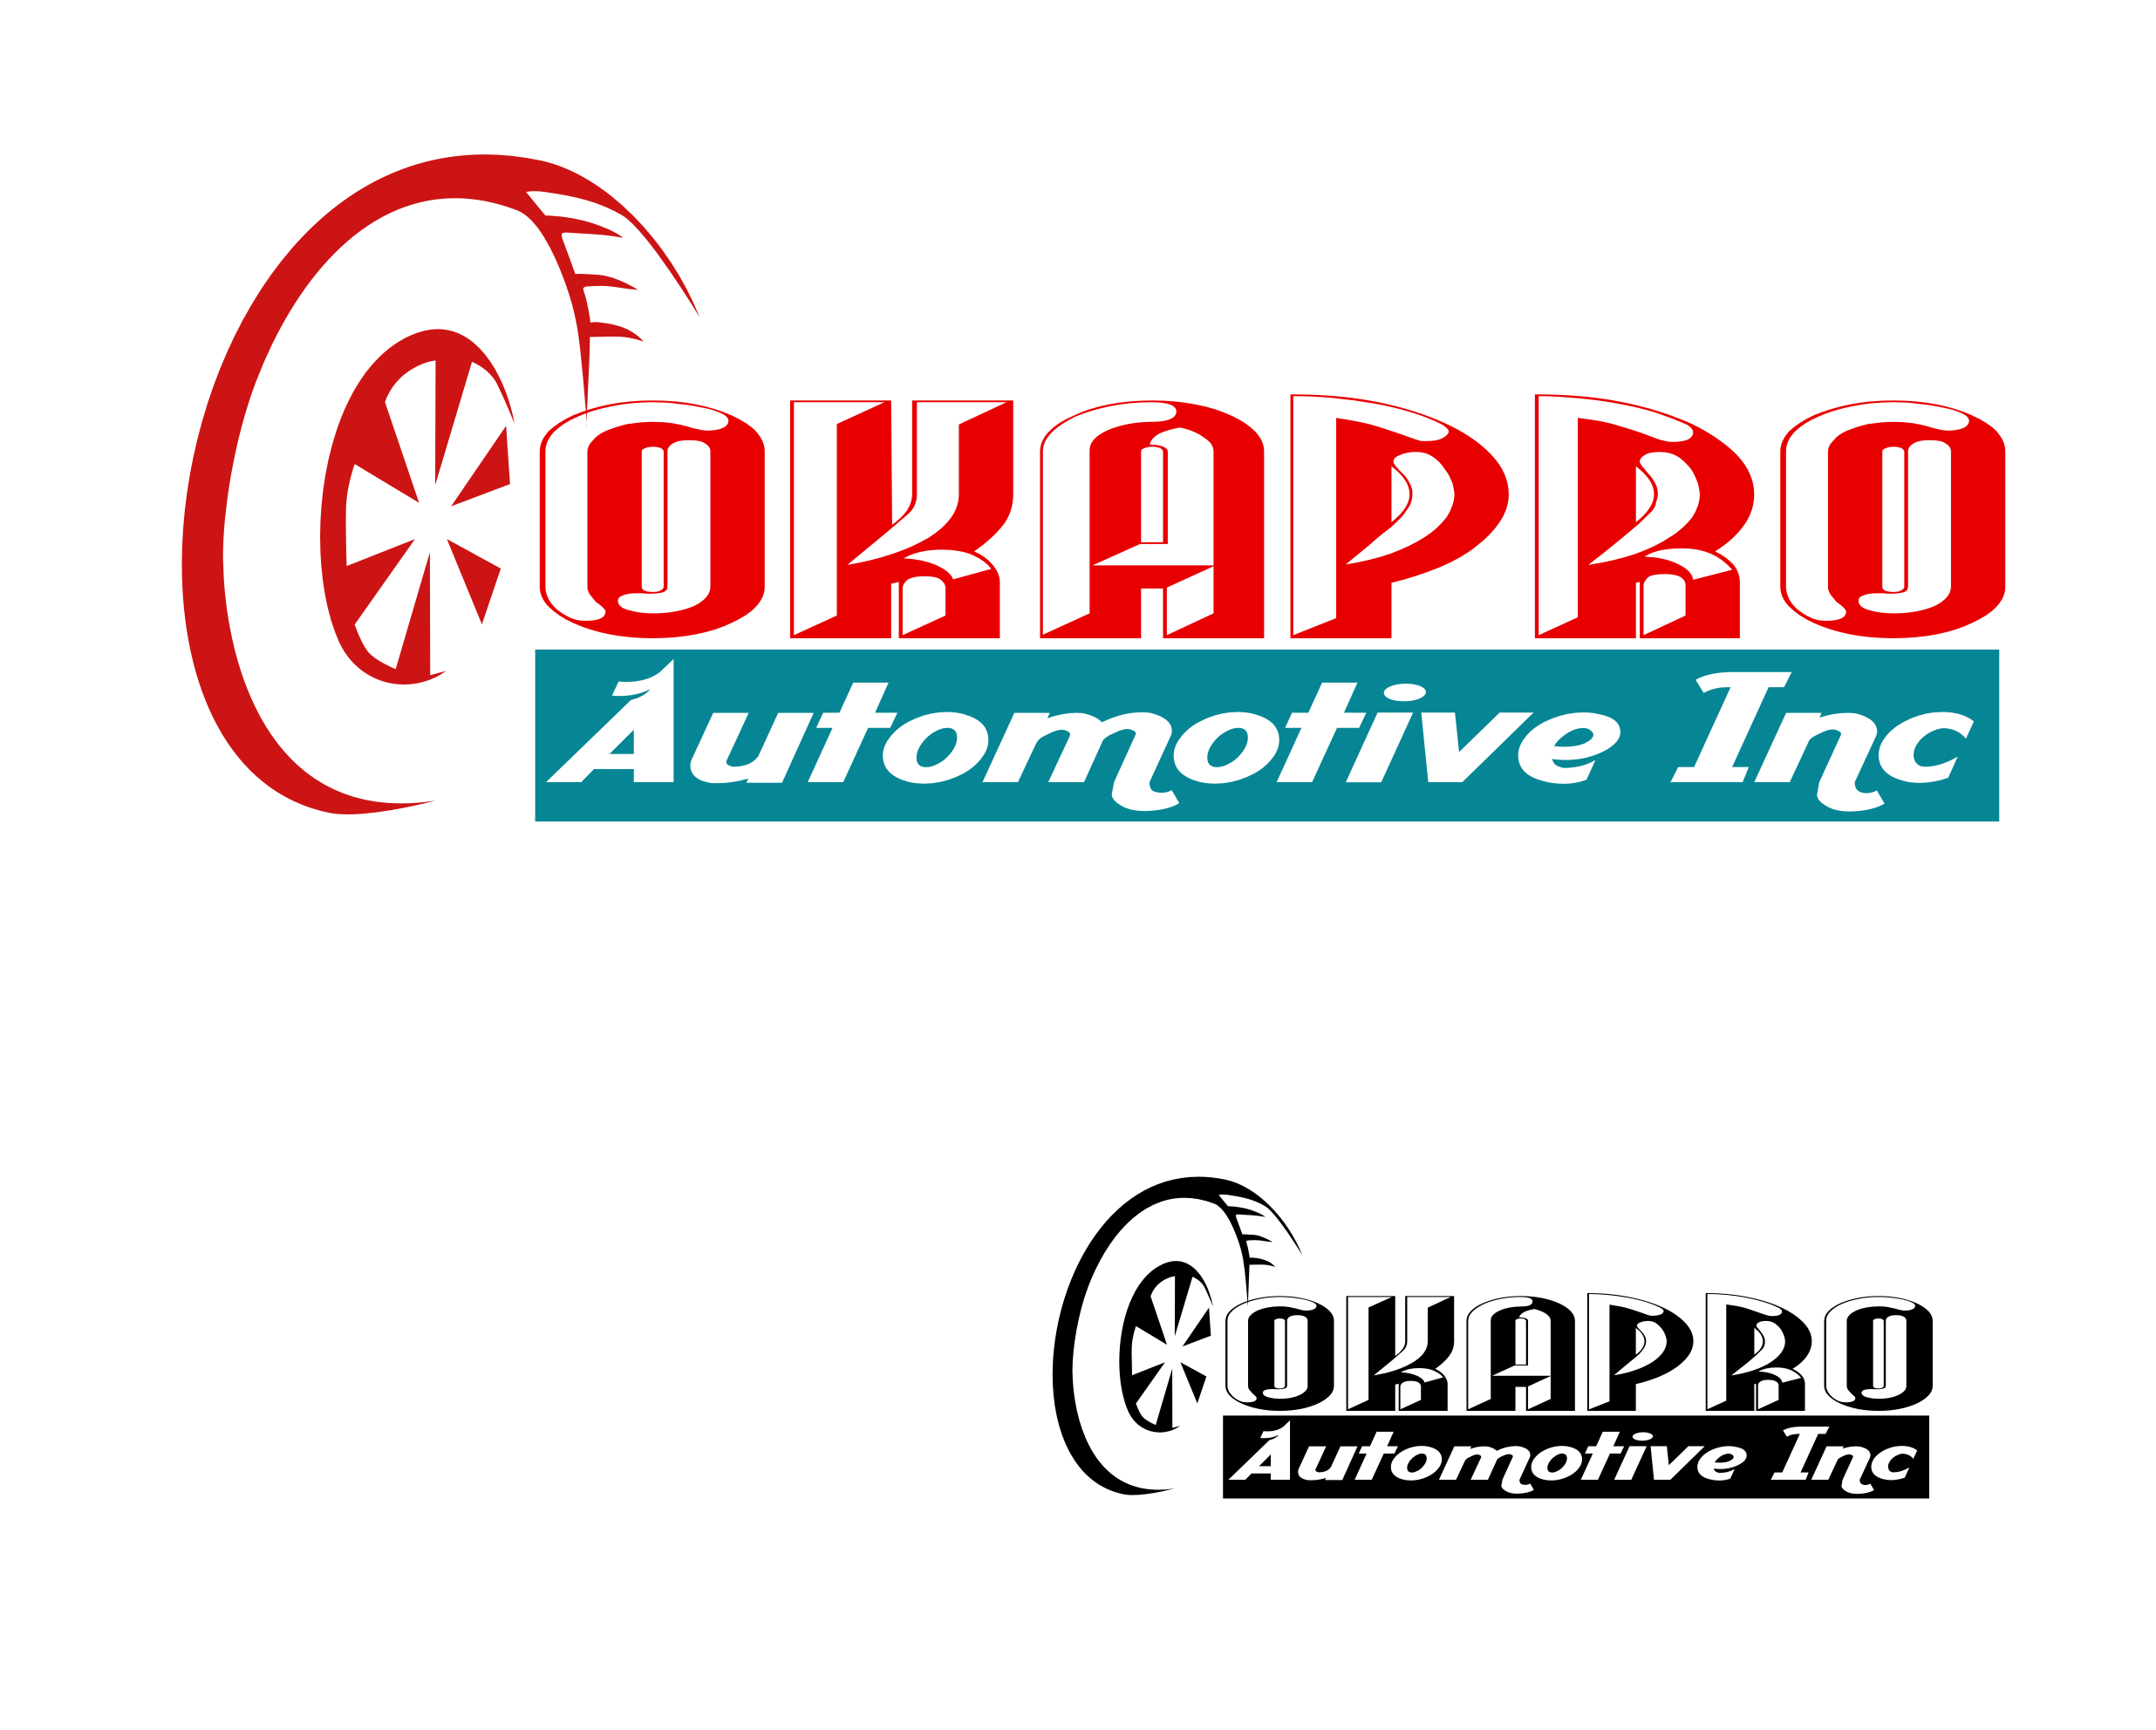 Logo Design by Aveeb Murdavein - Entry No. 12 in the Logo Design Contest New Logo Design for Okapro  Automotive  Inc.